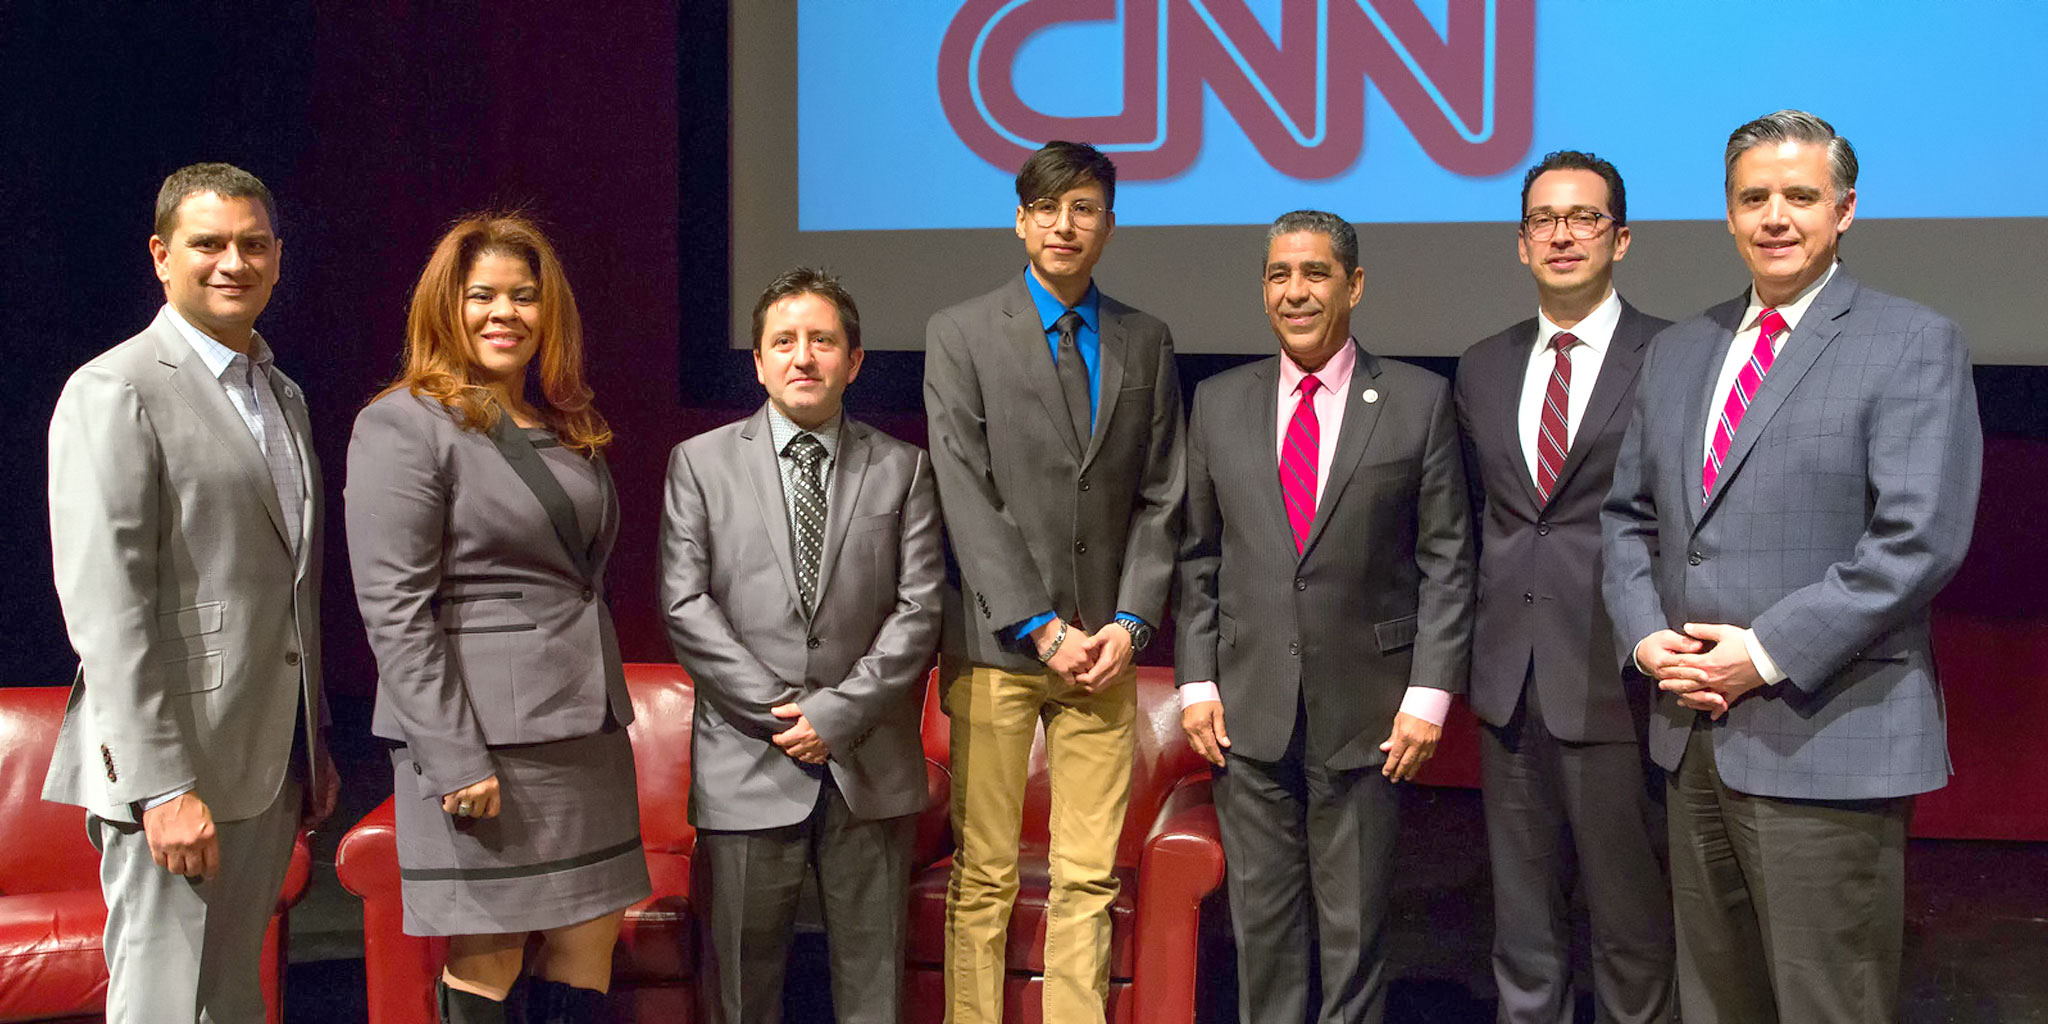 CNN en Espanol Screens Documentary at Lehman College that Chronicles the Struggle of Undocumented Immigrants in the U.S.